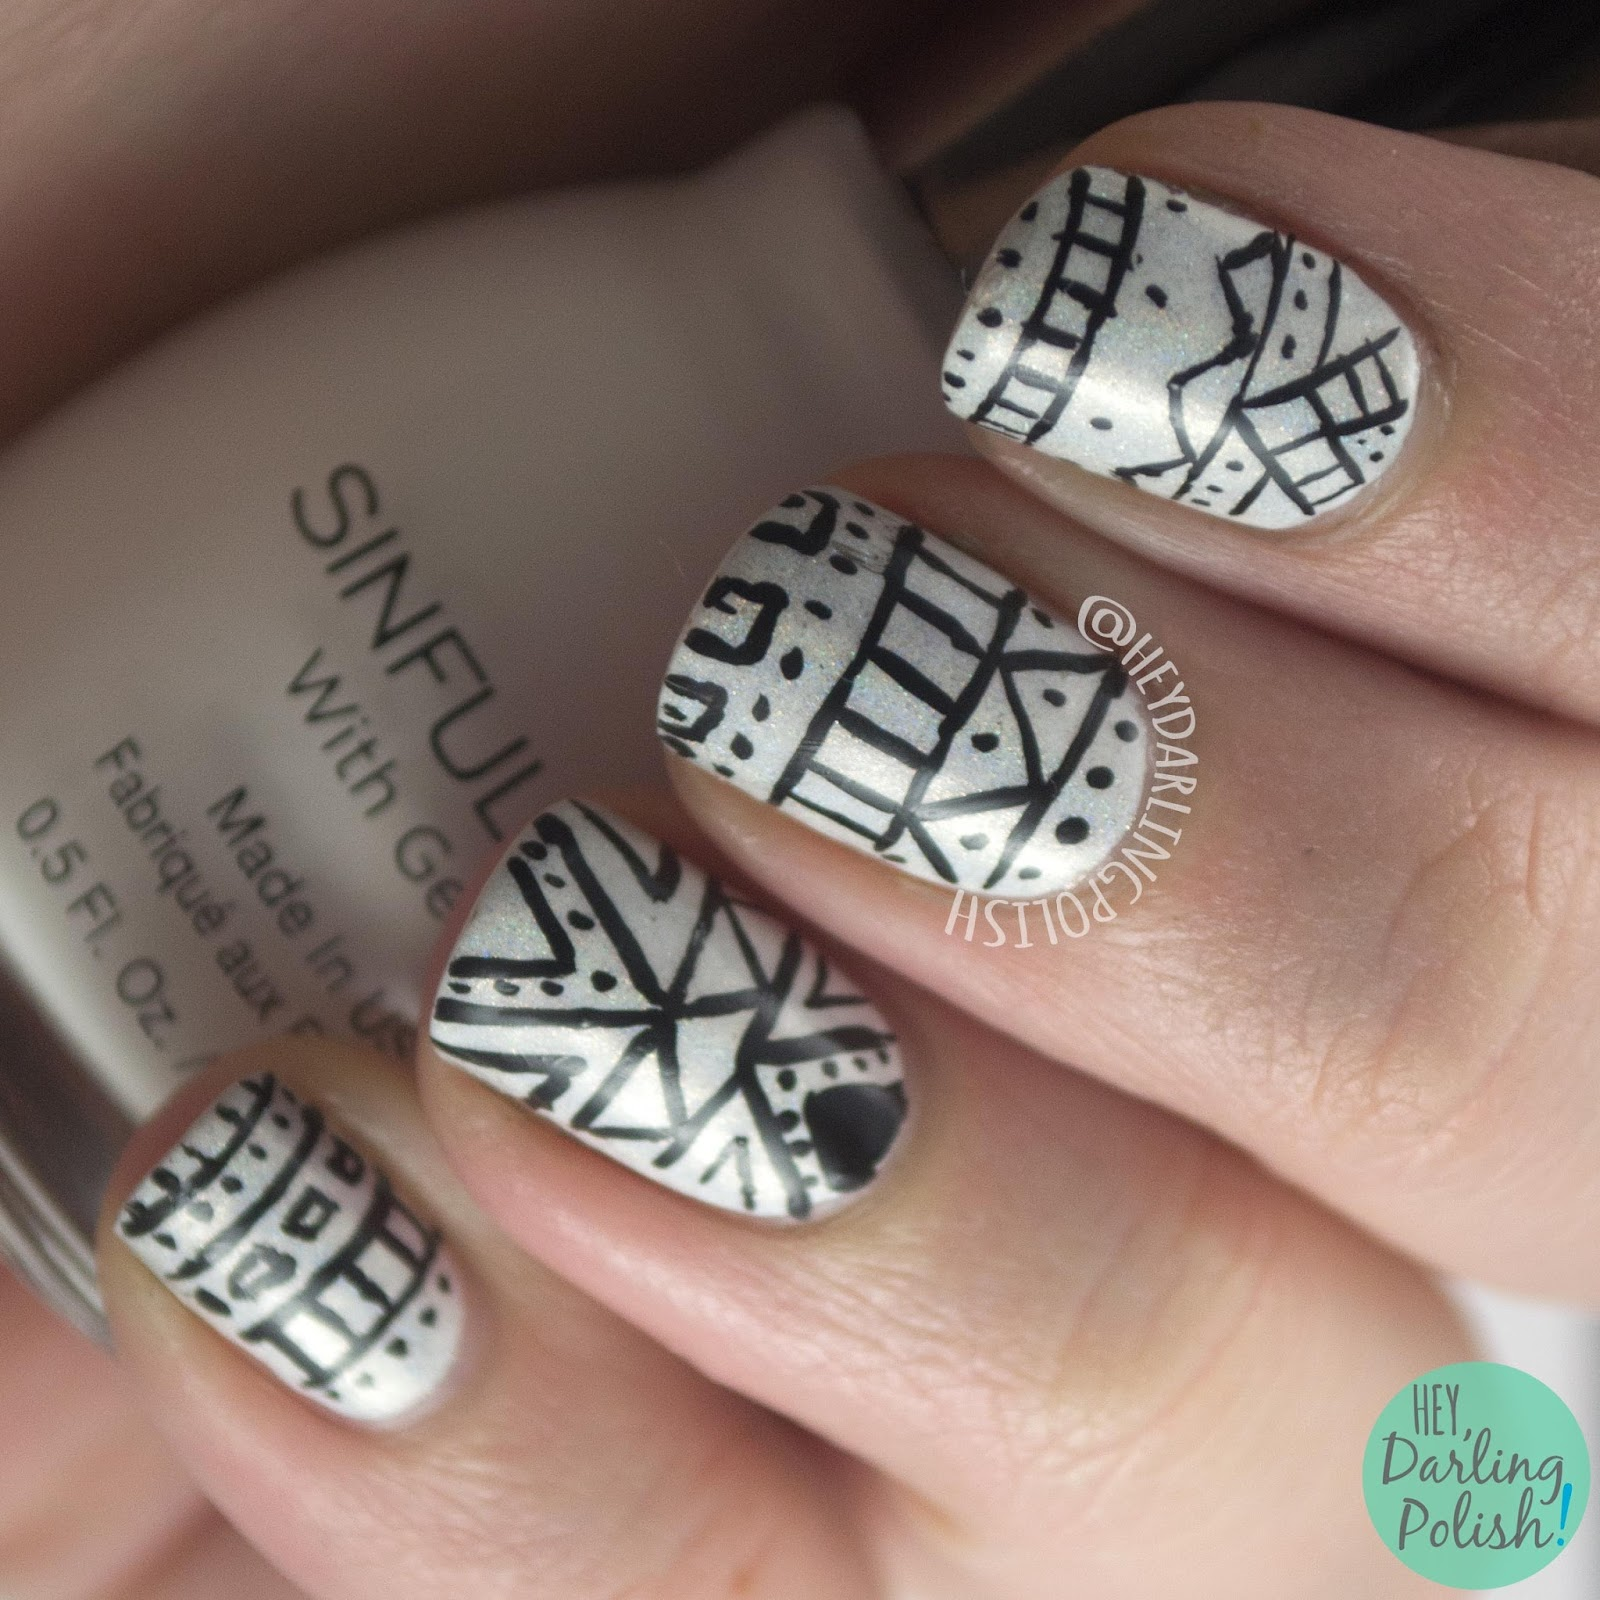 Amazing Tribal Nails Art Picture Pattern - Nail Art Ideas - morihati.com